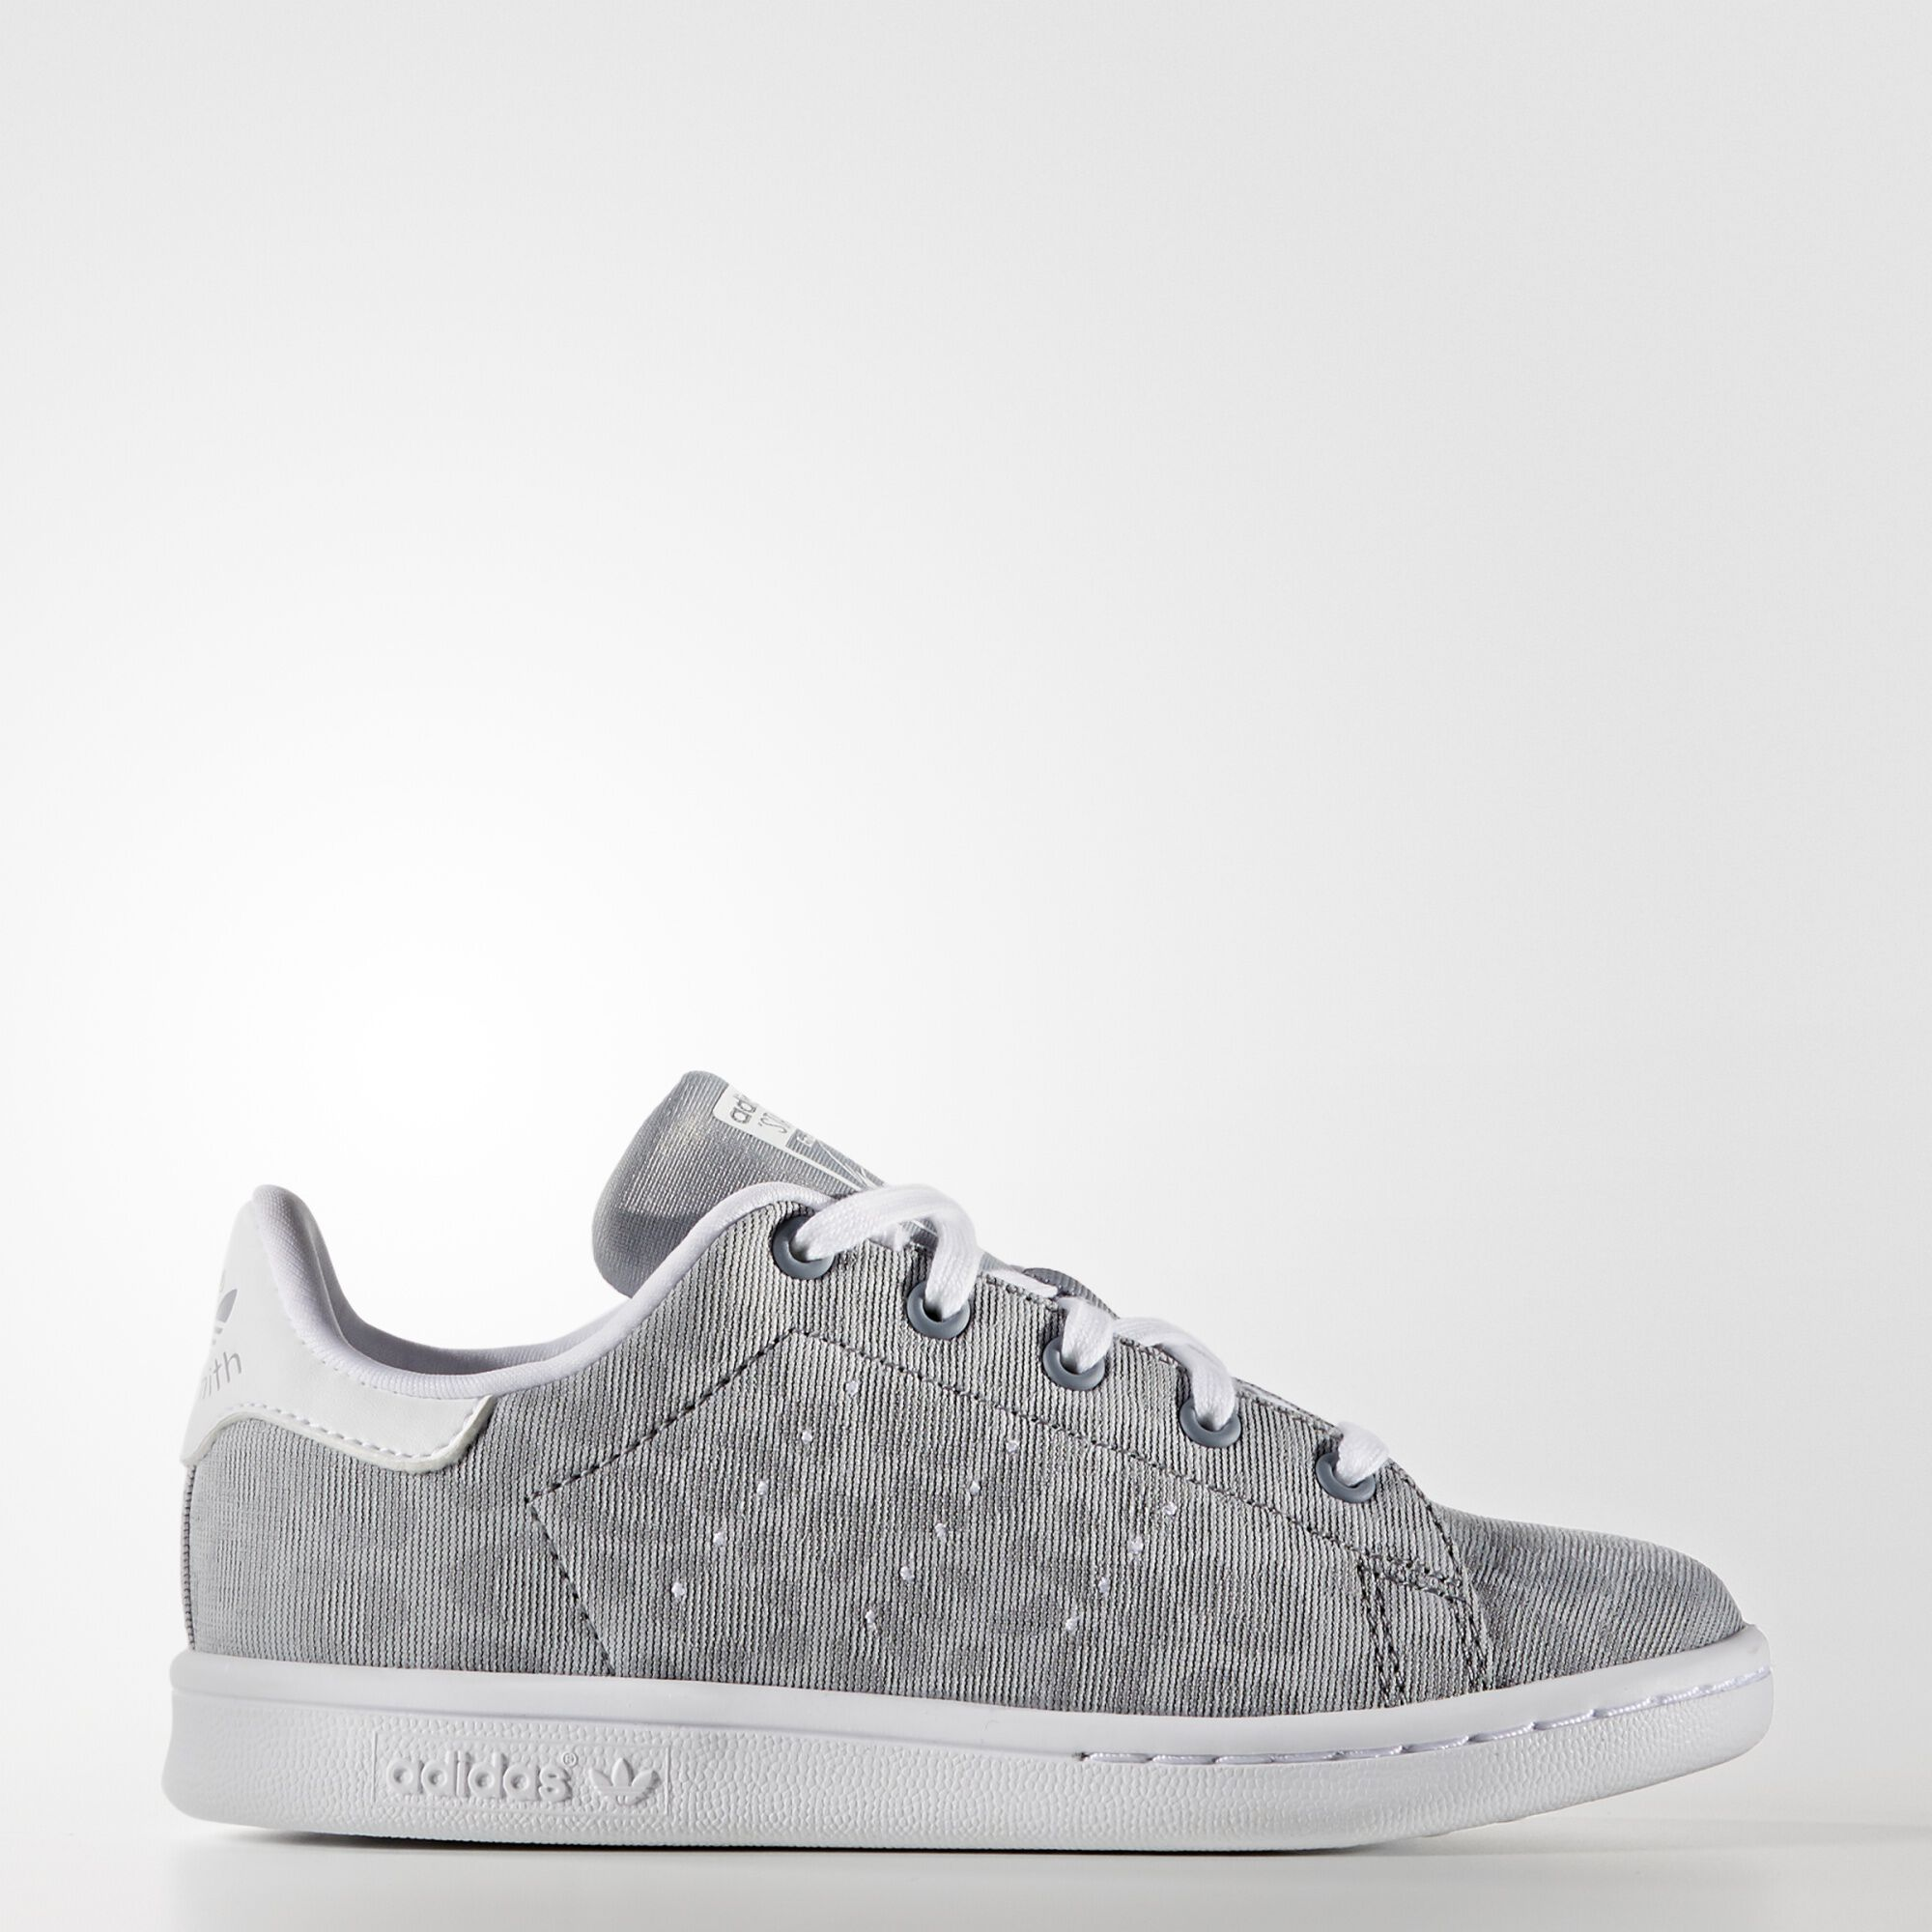 adidas stan smith women's physicians and obgyn nearby